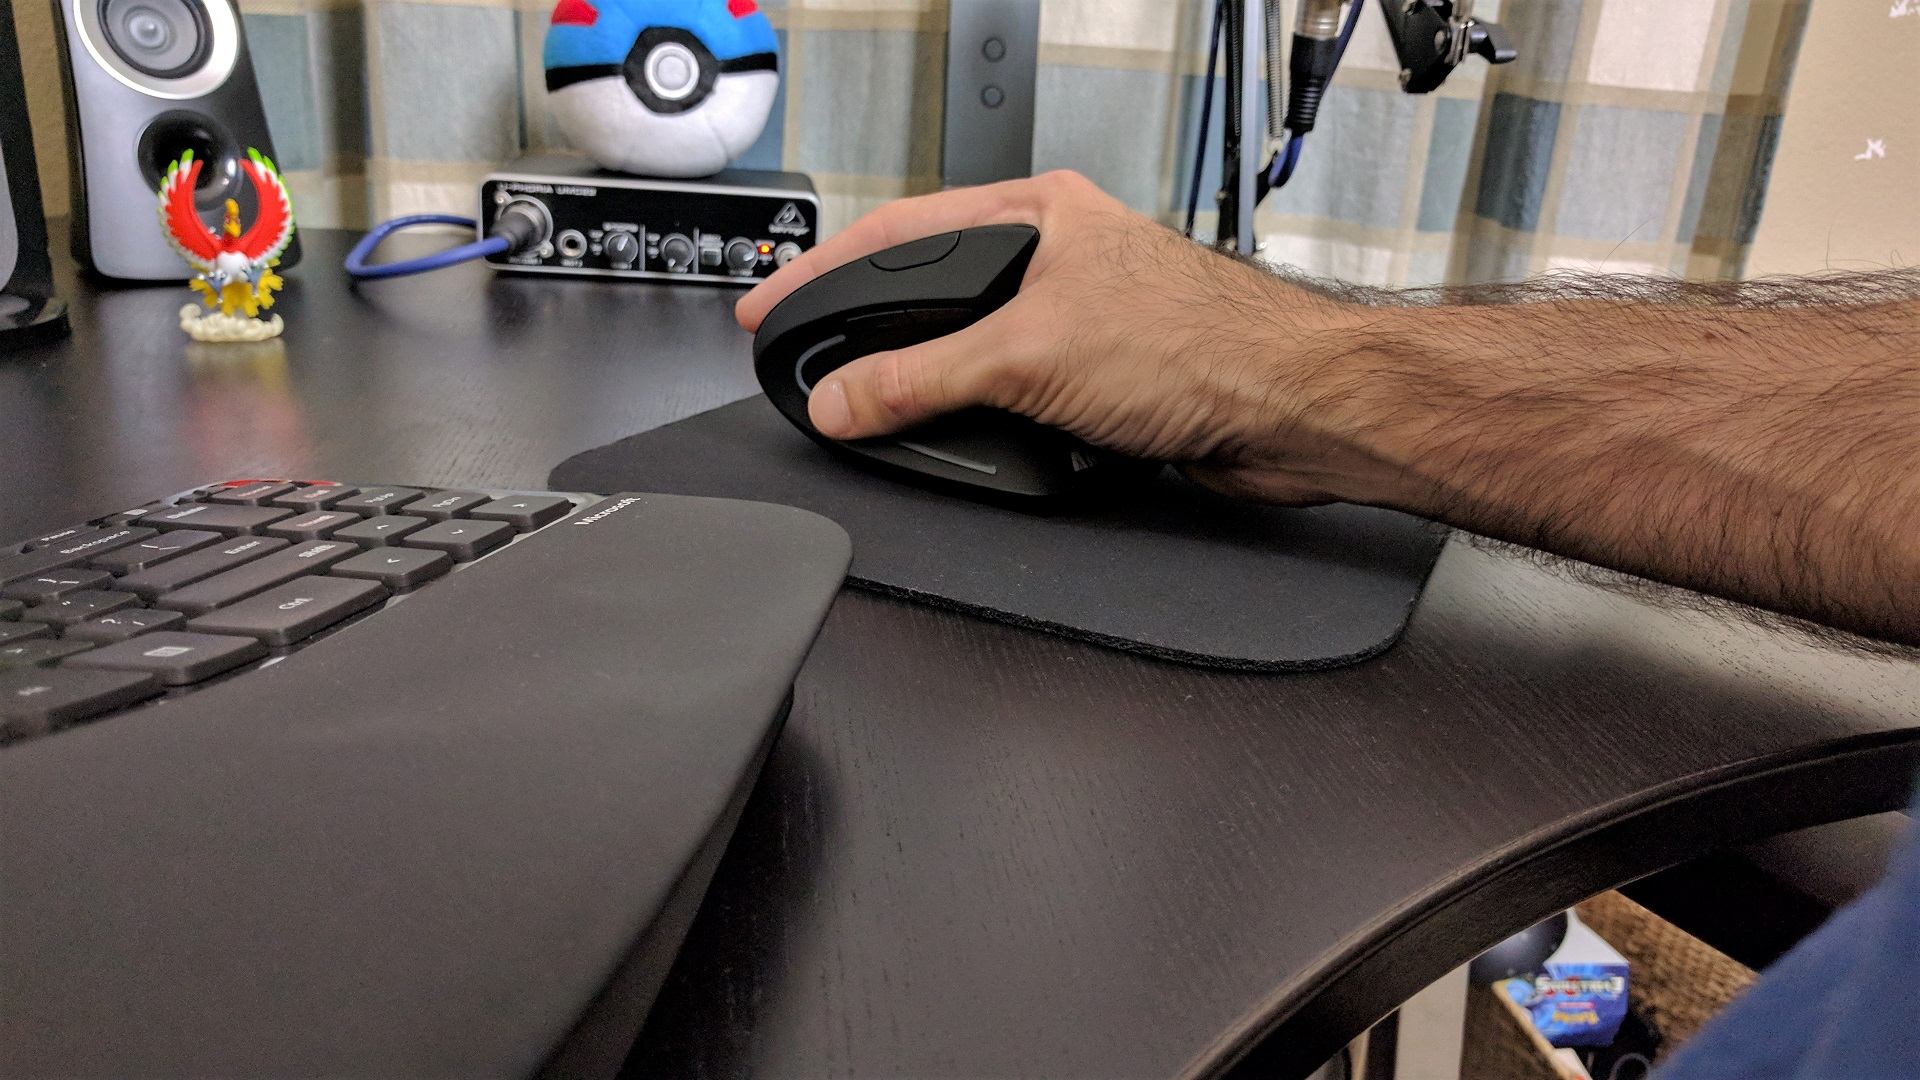 Anker Vertical Ergonomic Optical Mouse Review